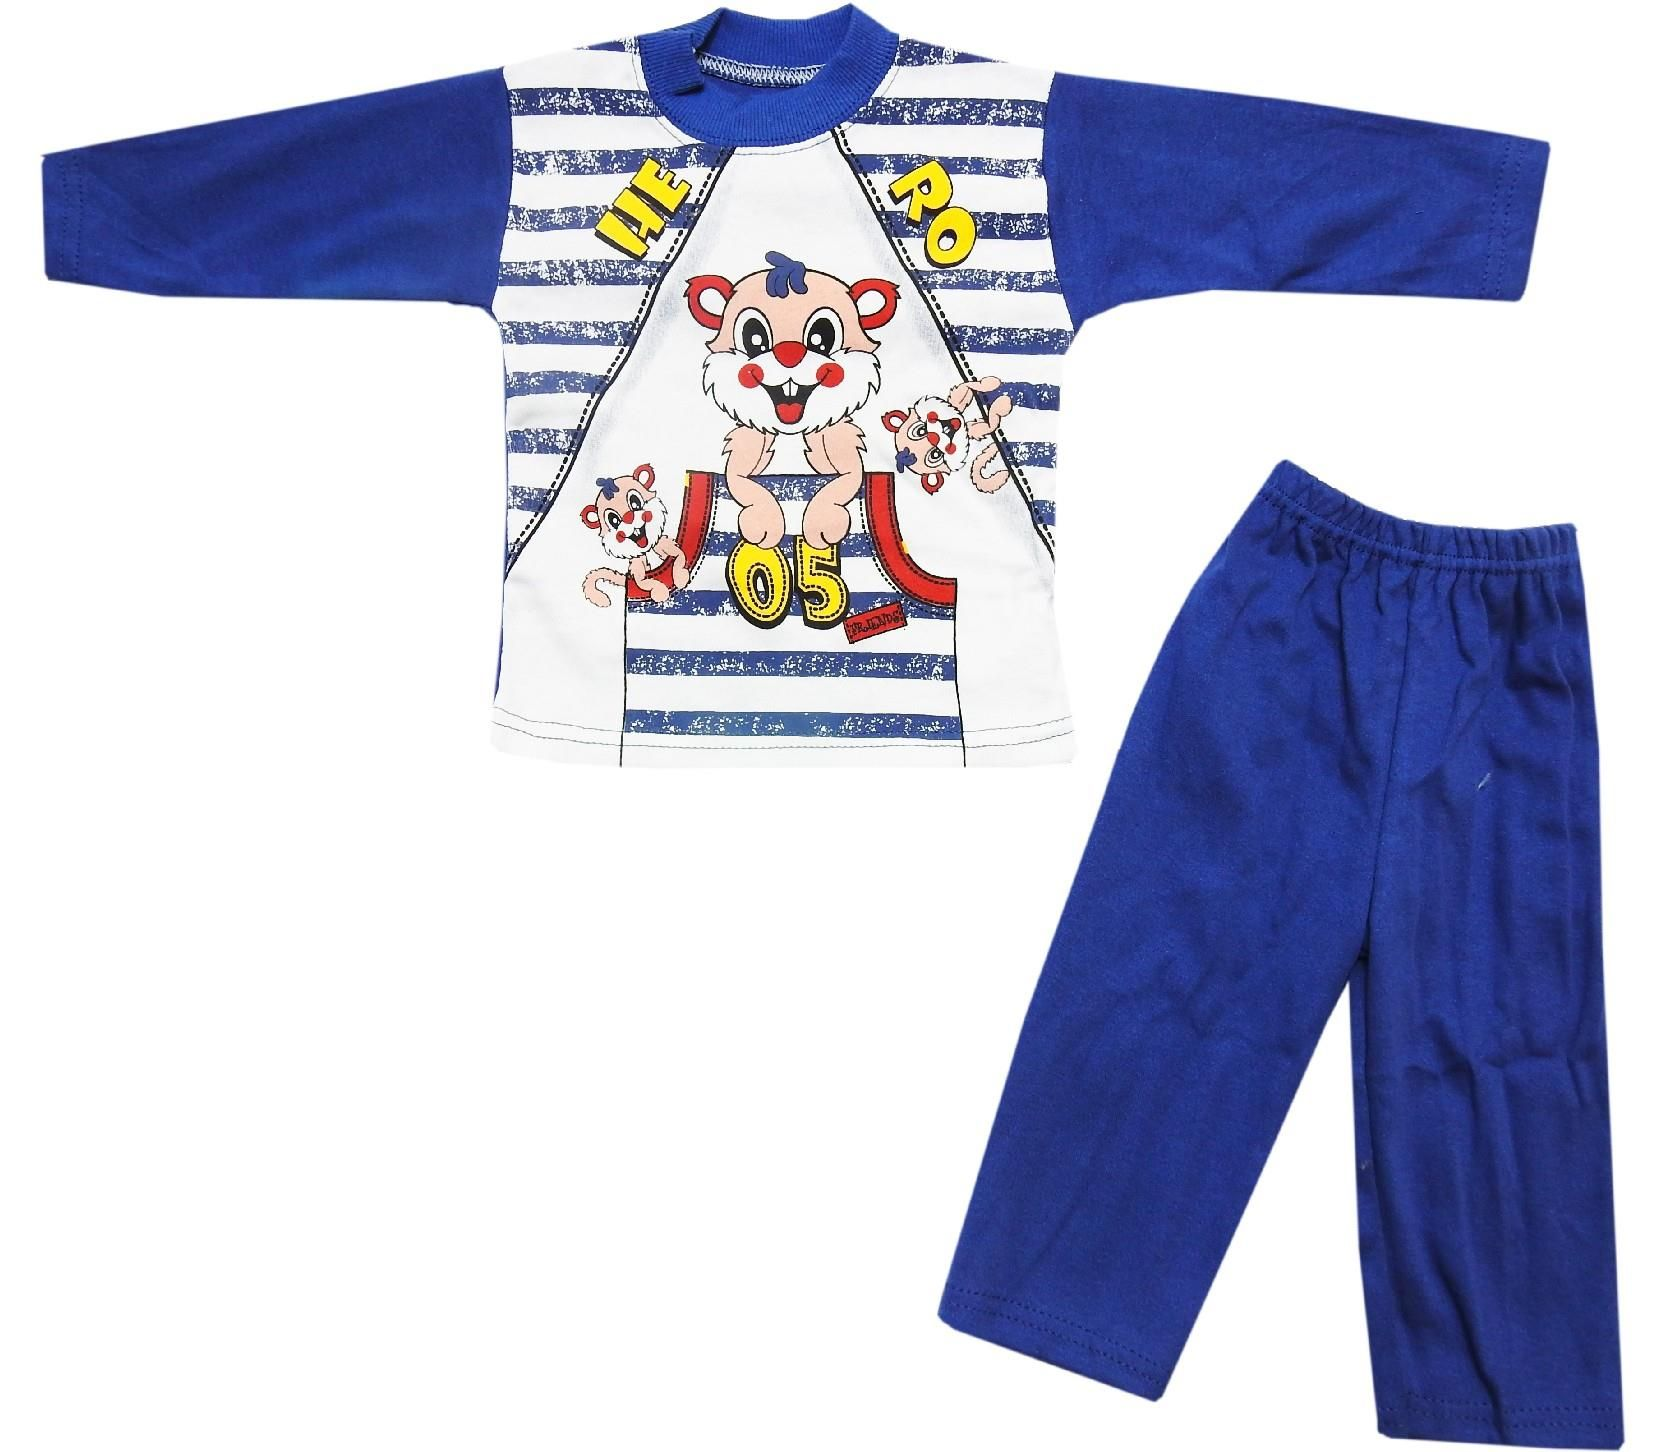 126 wholesale tiger printed sweat and trouser for kids 9 12 month